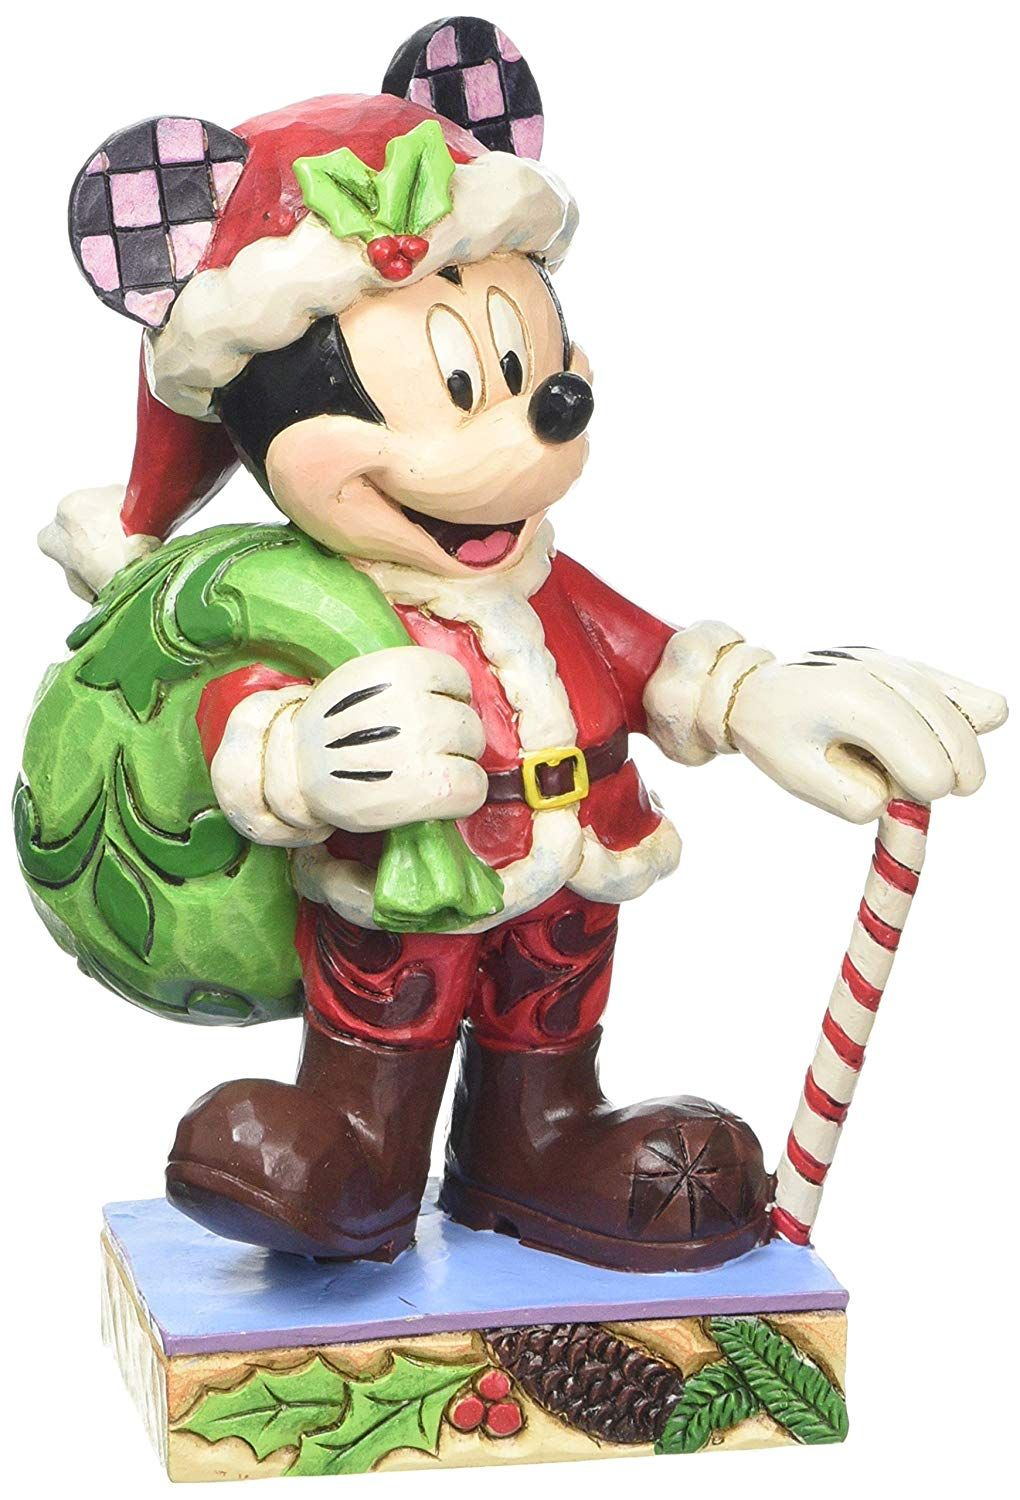 Disney Traditions Holiday Cheer Mickey Mouse Figurine Amazon Co Uk